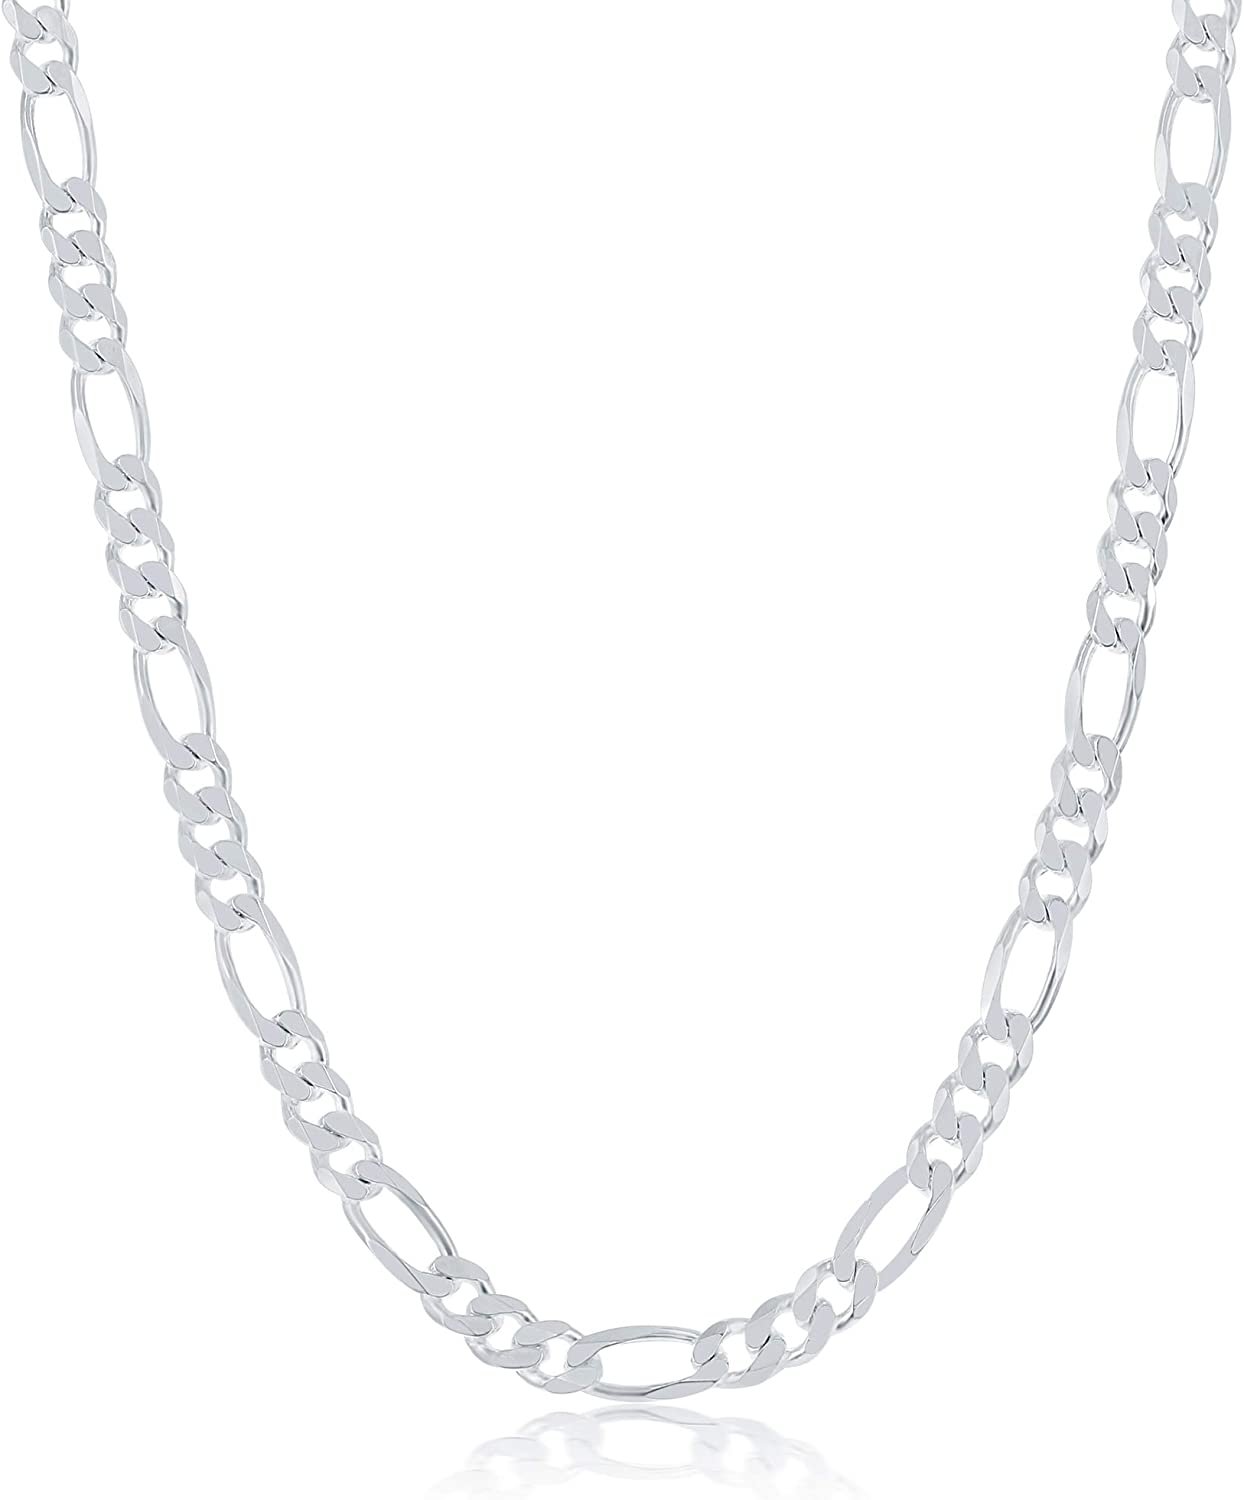 Year-end annual account NYC Sterling Silver Chain Max 61% OFF – f Figaro Premium Craftsmanship